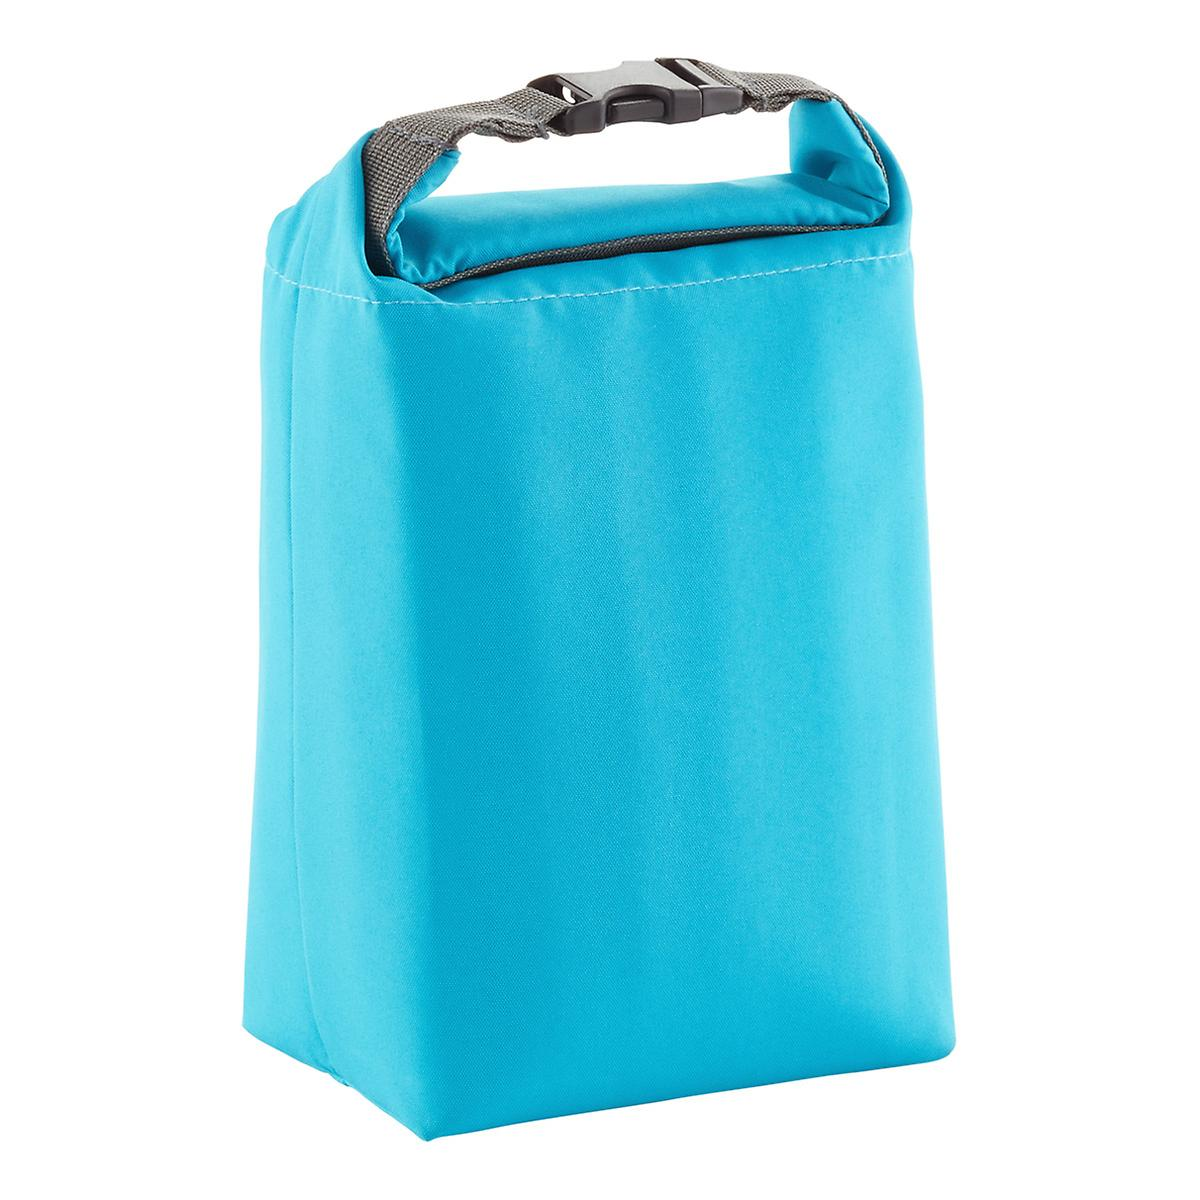 Blue Avocado Aqua Click 'n' Go Roll-Top Lunch Bag